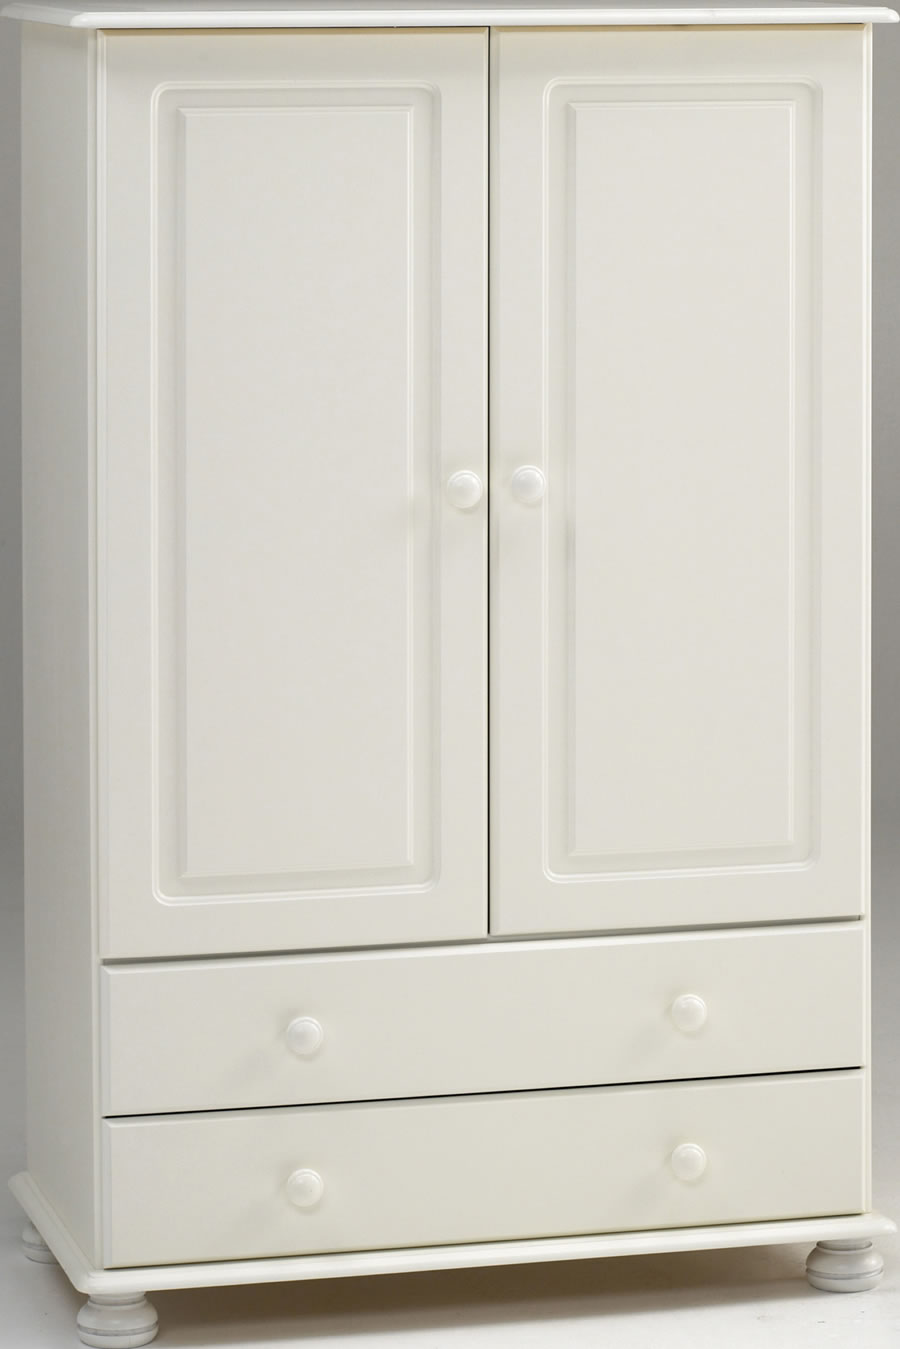 steens richmond 2 door 2 drawer combi wardrobe in white - White Wardrobe